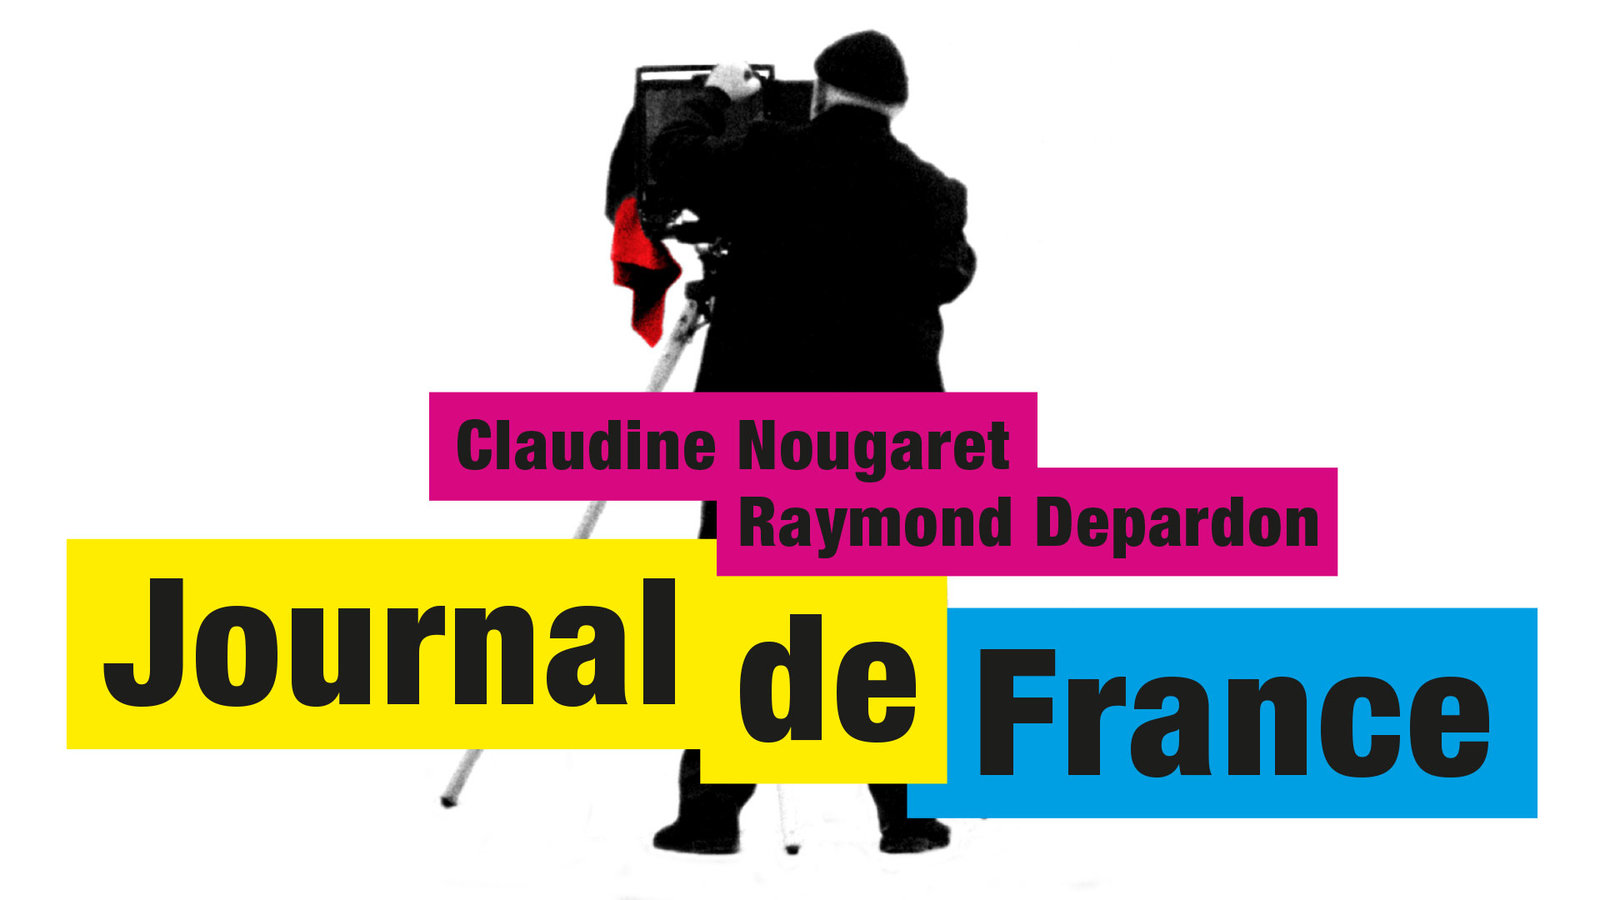 Journal de France - The Work of Renowned Photographer Raymond Depardon